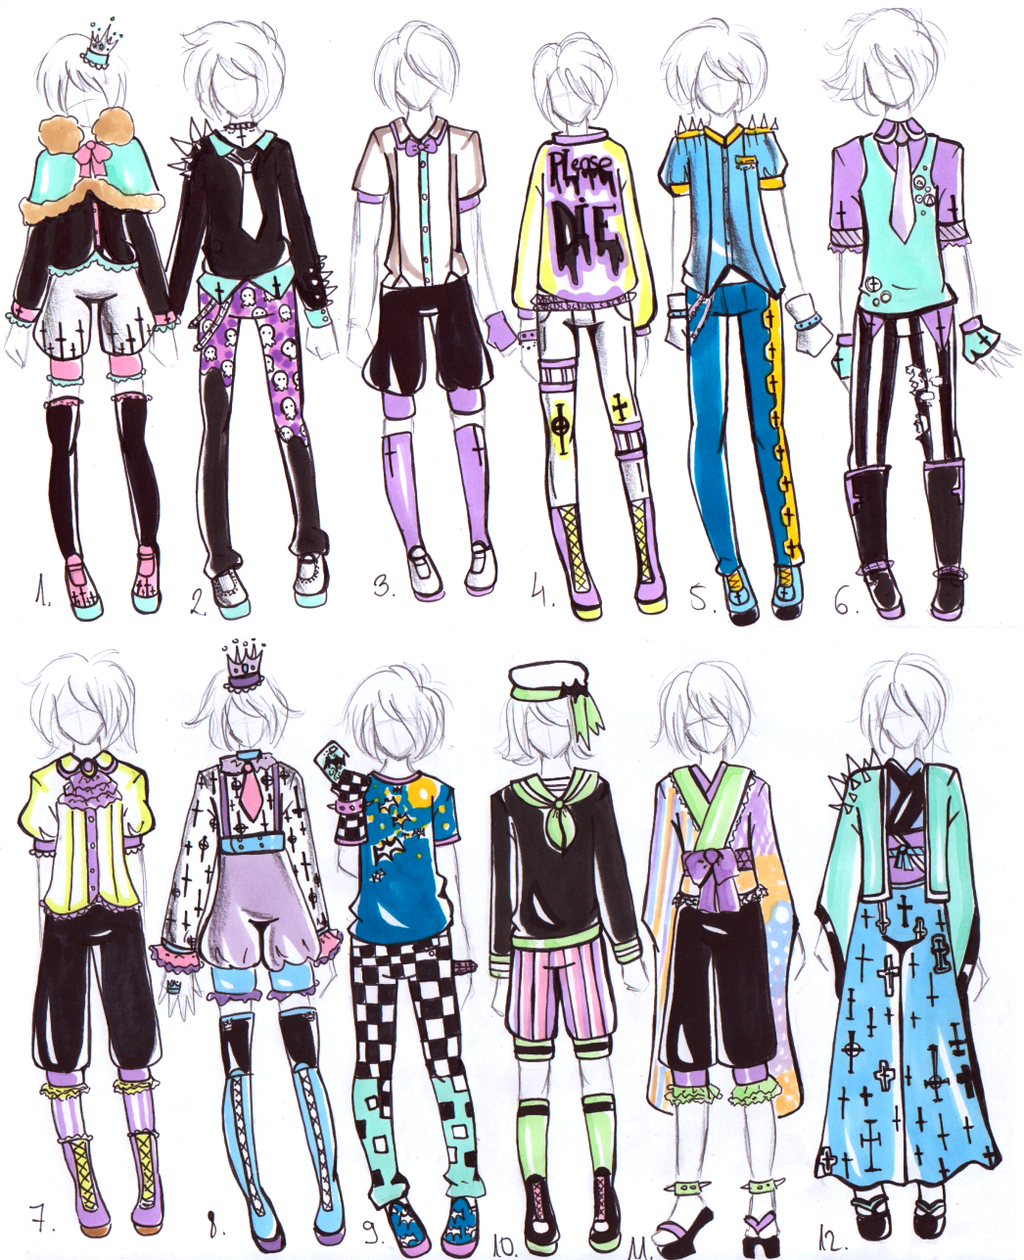 Pin by KiwiSkullz on Costume Design in 2019 | Pastel goth ...